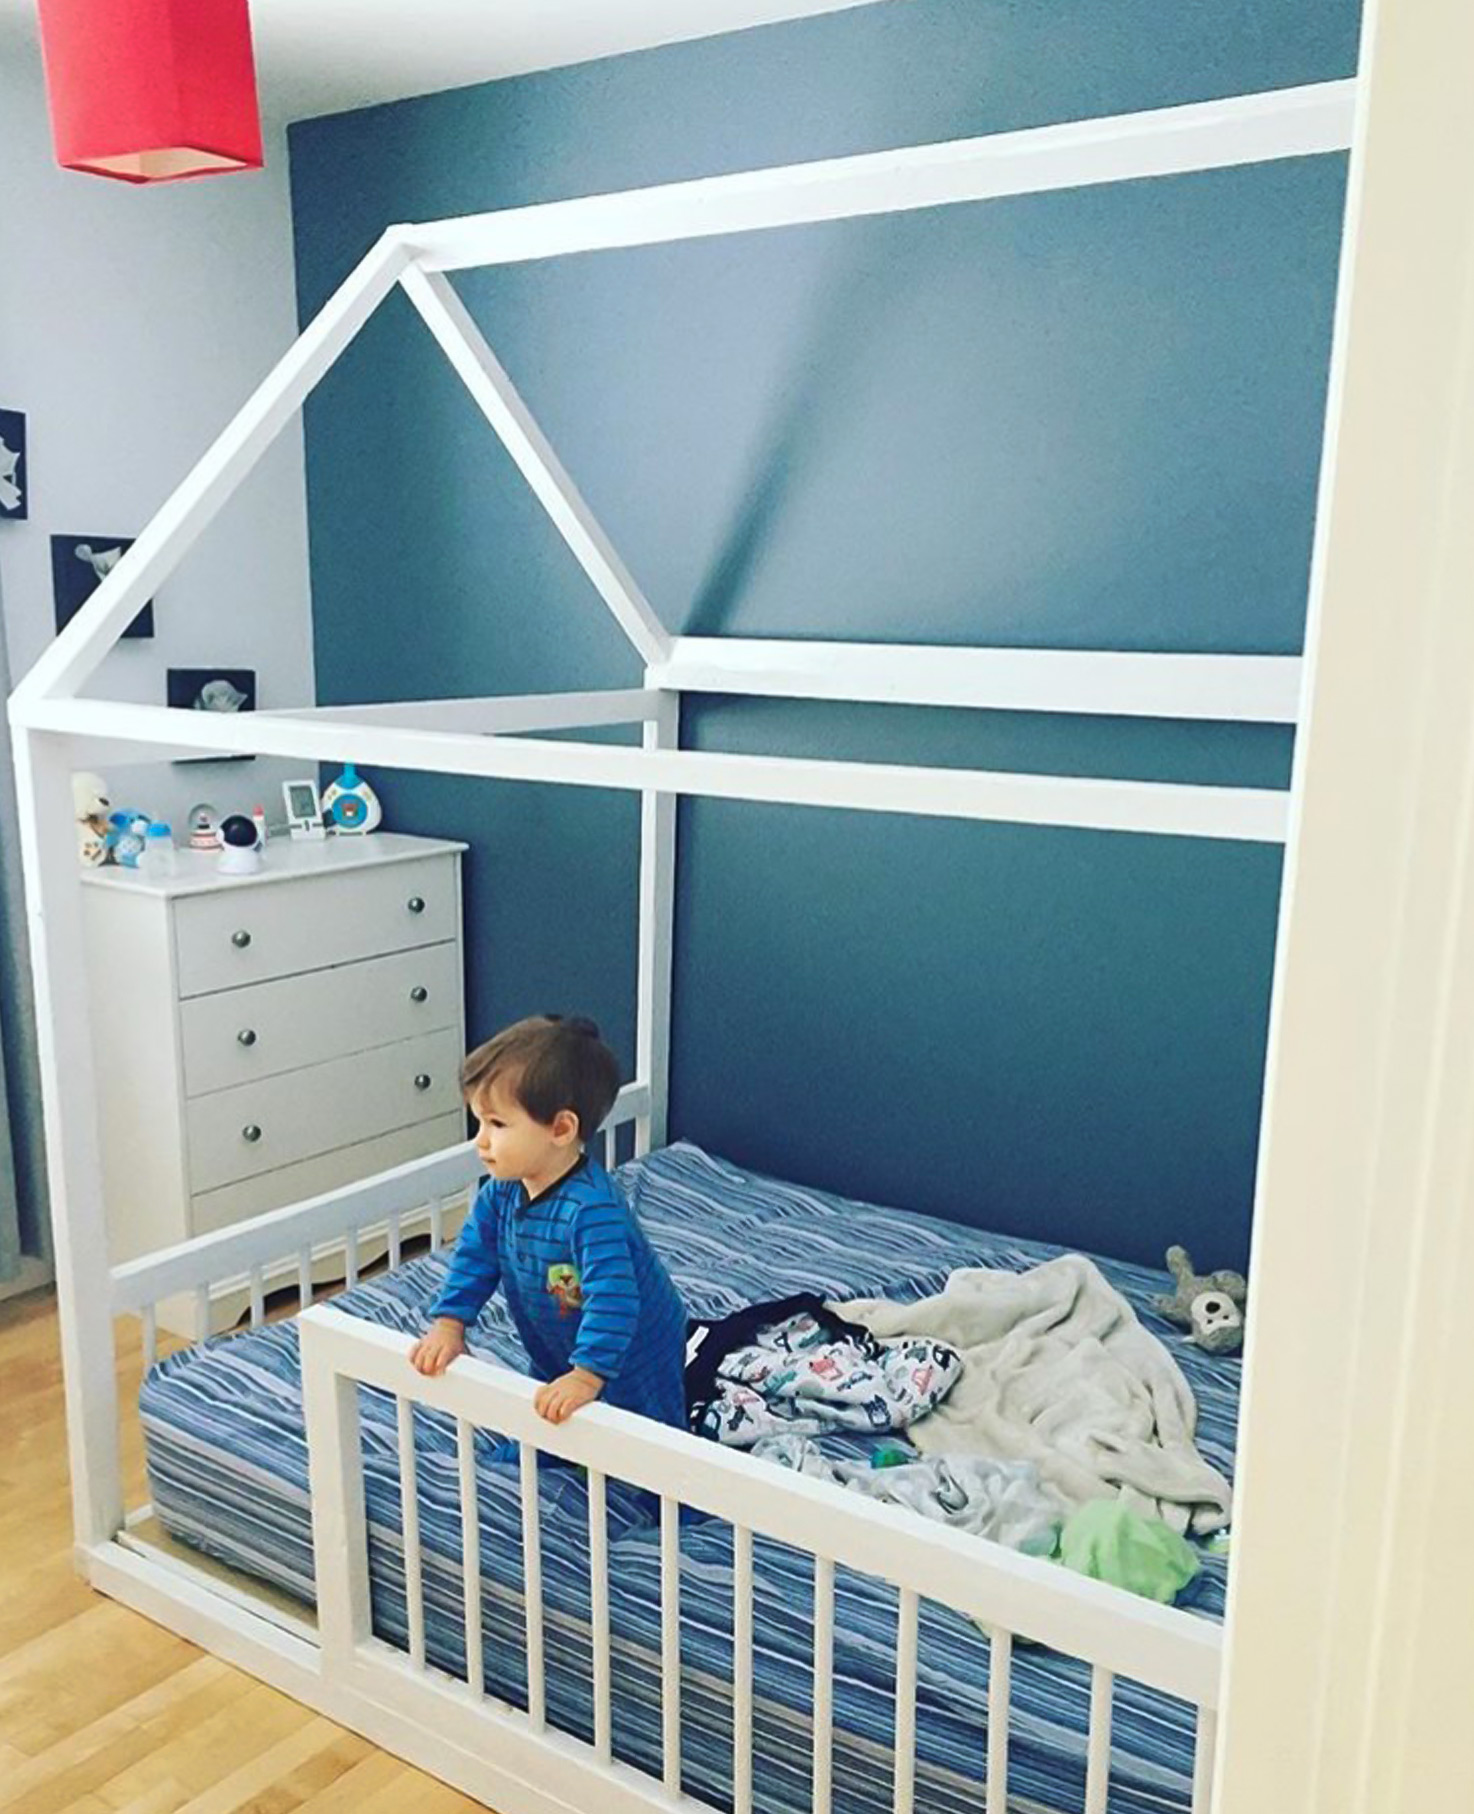 Deco Bebe A Faire Soi Meme how to build a montessori bed for your baby | sparks and bloom